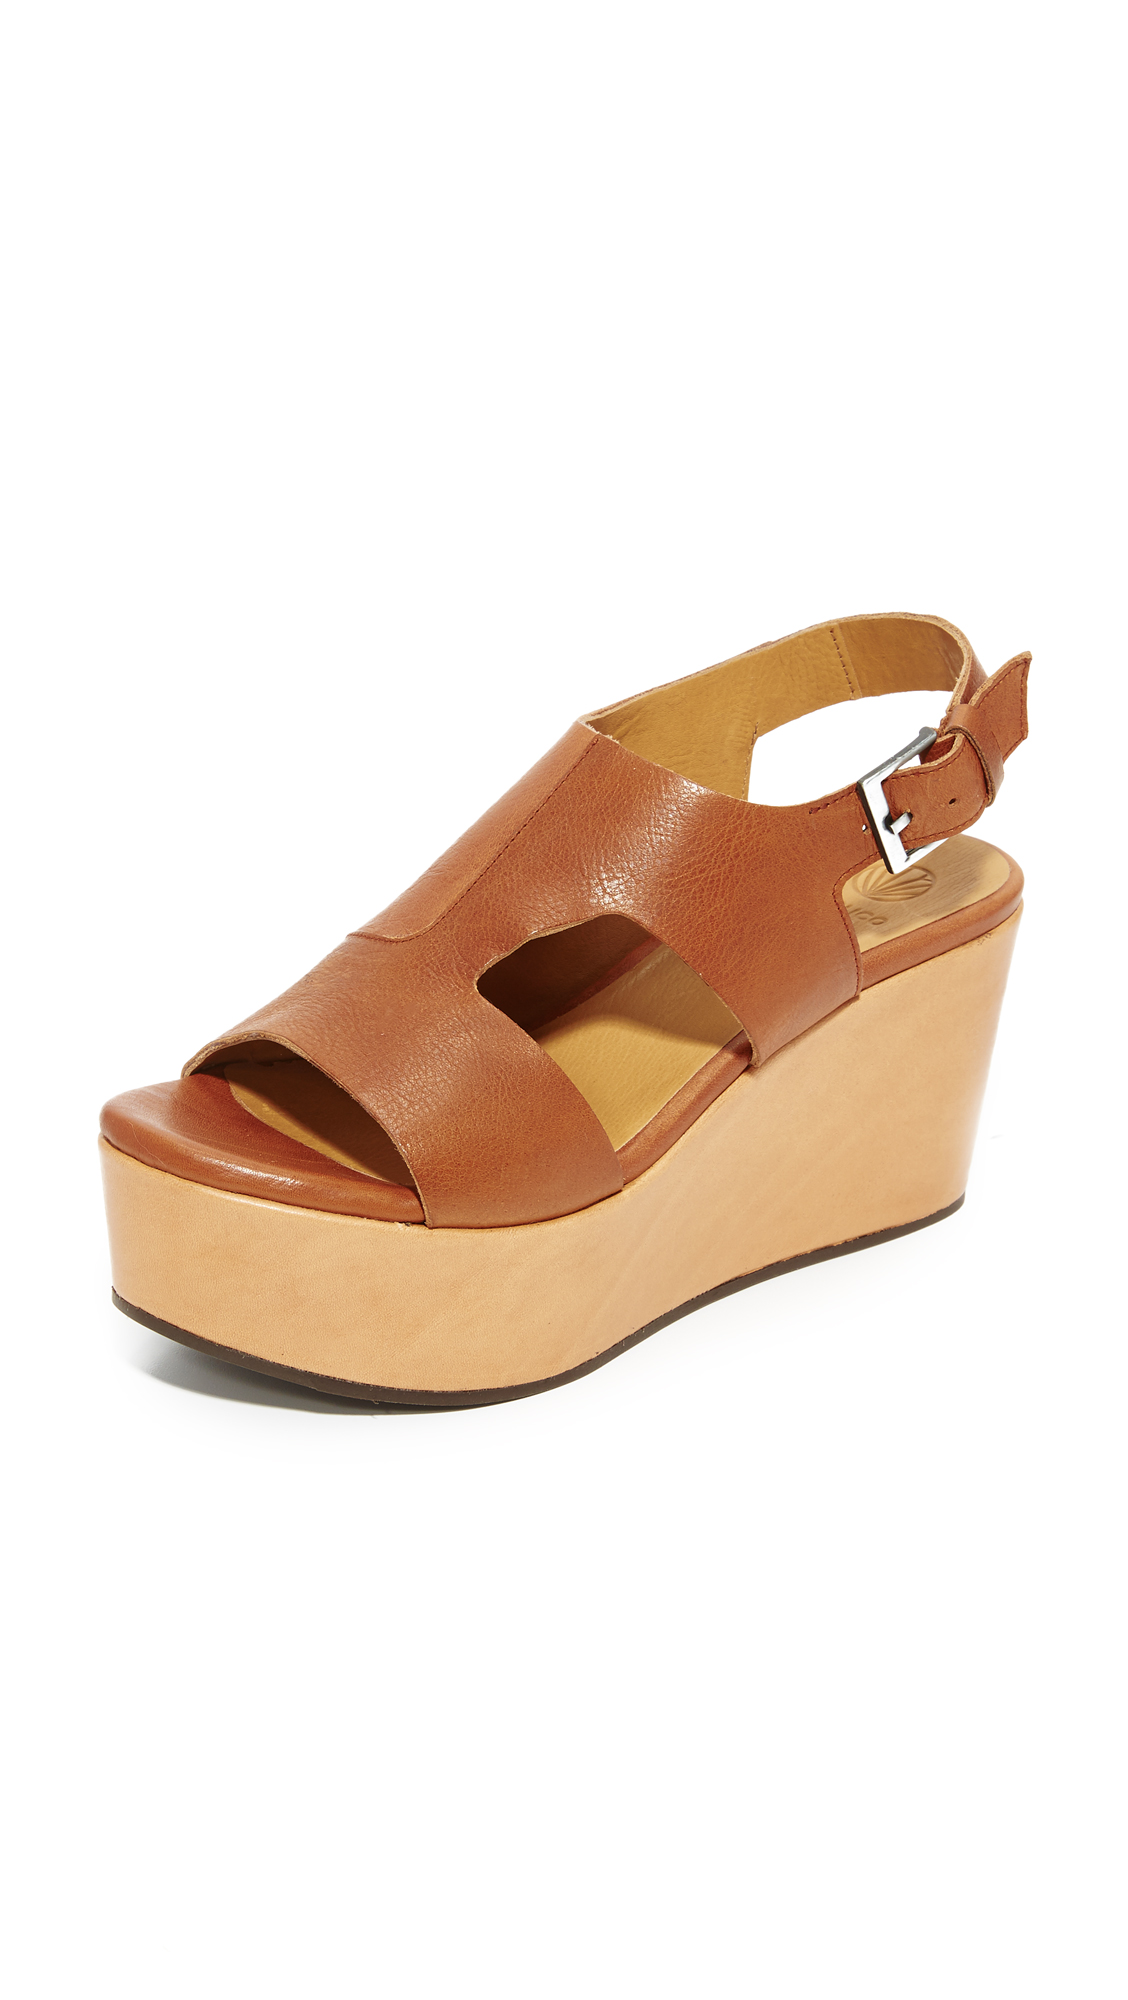 Coclico Shoes Riptide Wedges - Pagoda York at Shopbop